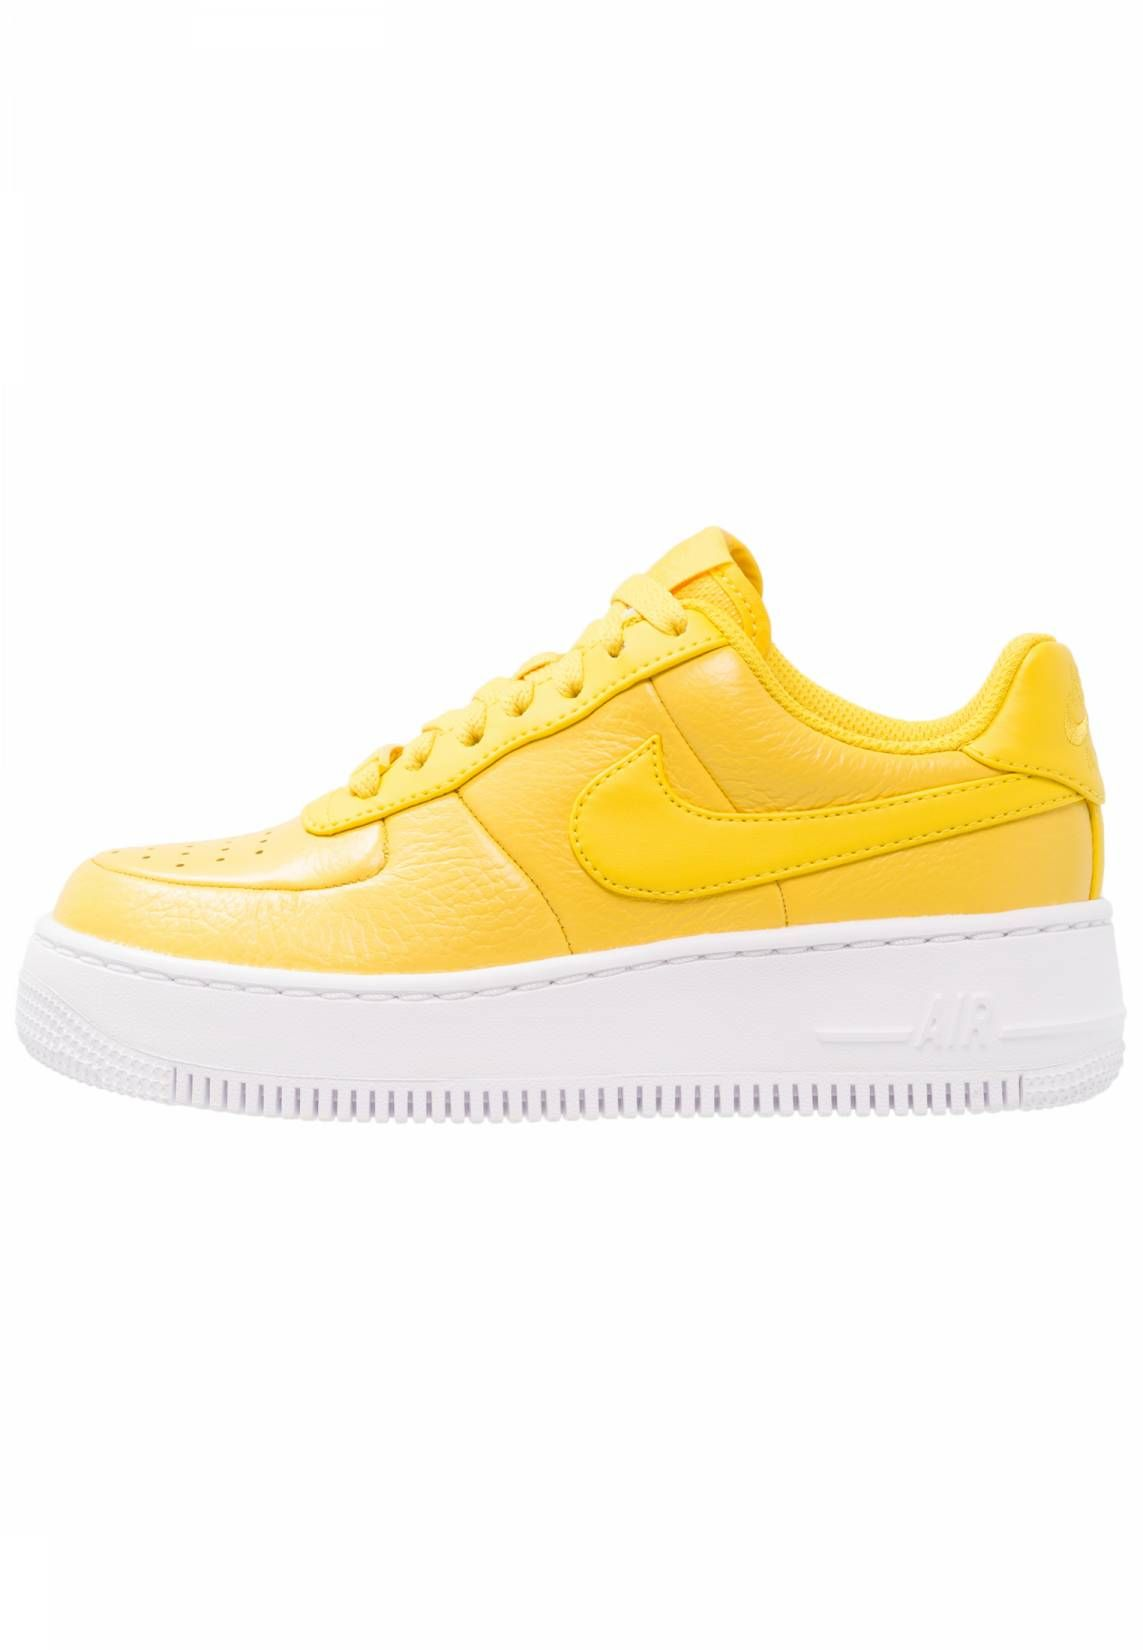 643a10fb9a79f Nike Sportswear. AIR FORCE 1 UPSTEP PRM LX - Zapatillas - vivid sulfur white